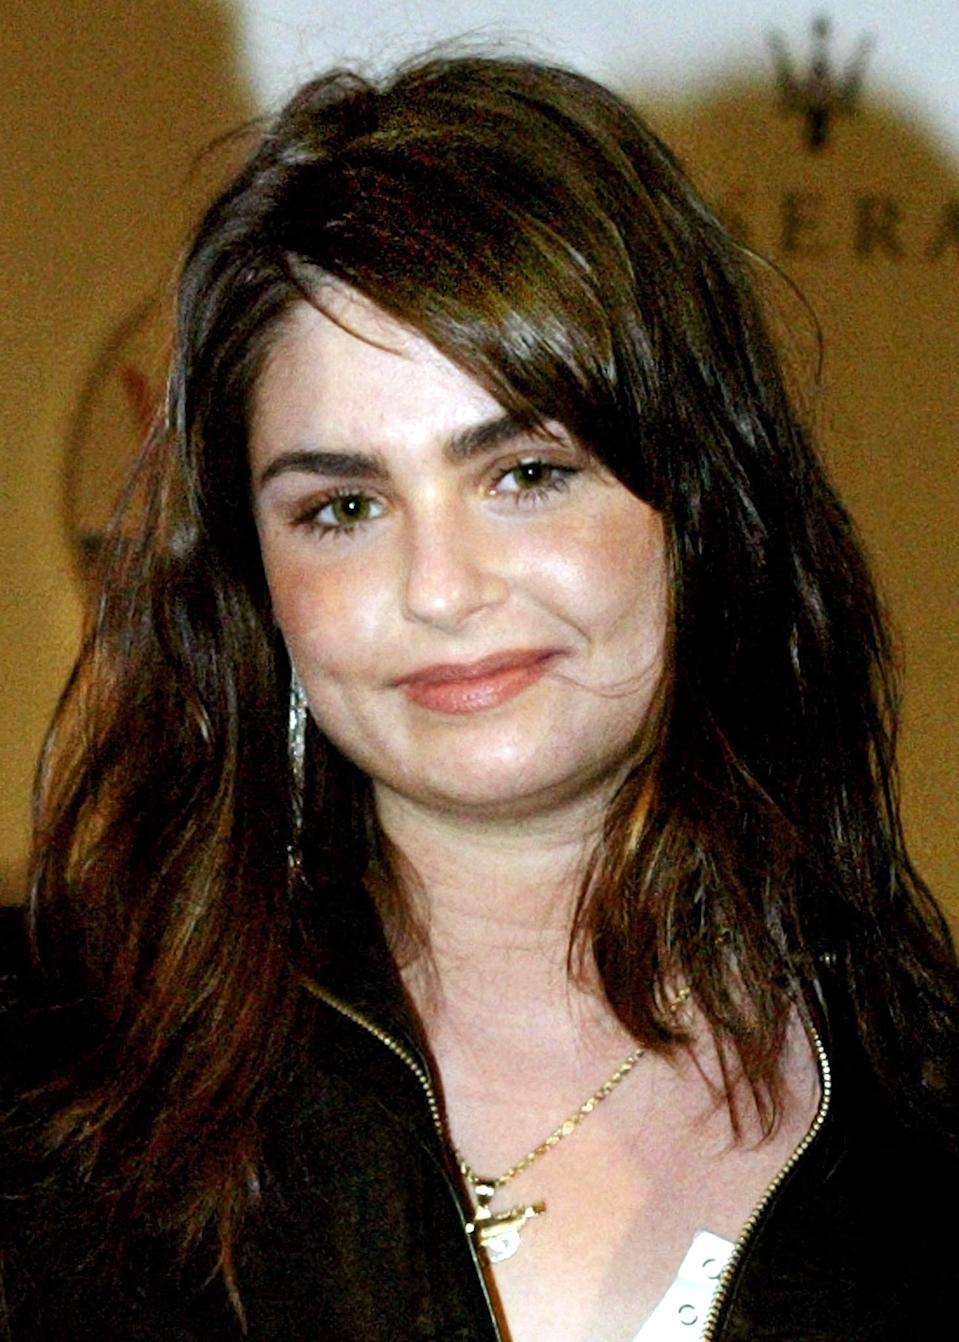 Aimee Osbourne, daughter of Ozzy Osbourne, arrives at a party hosted by Italian automobile manufacturer Maserati, celebrating the 60th Anniversary of the Golden Globes, in Los Angeles January 16, 2003. The Golden Globe Awards will be presented in Los Angeles on January 19. REUTERS/Adrees Latif AL/JDP